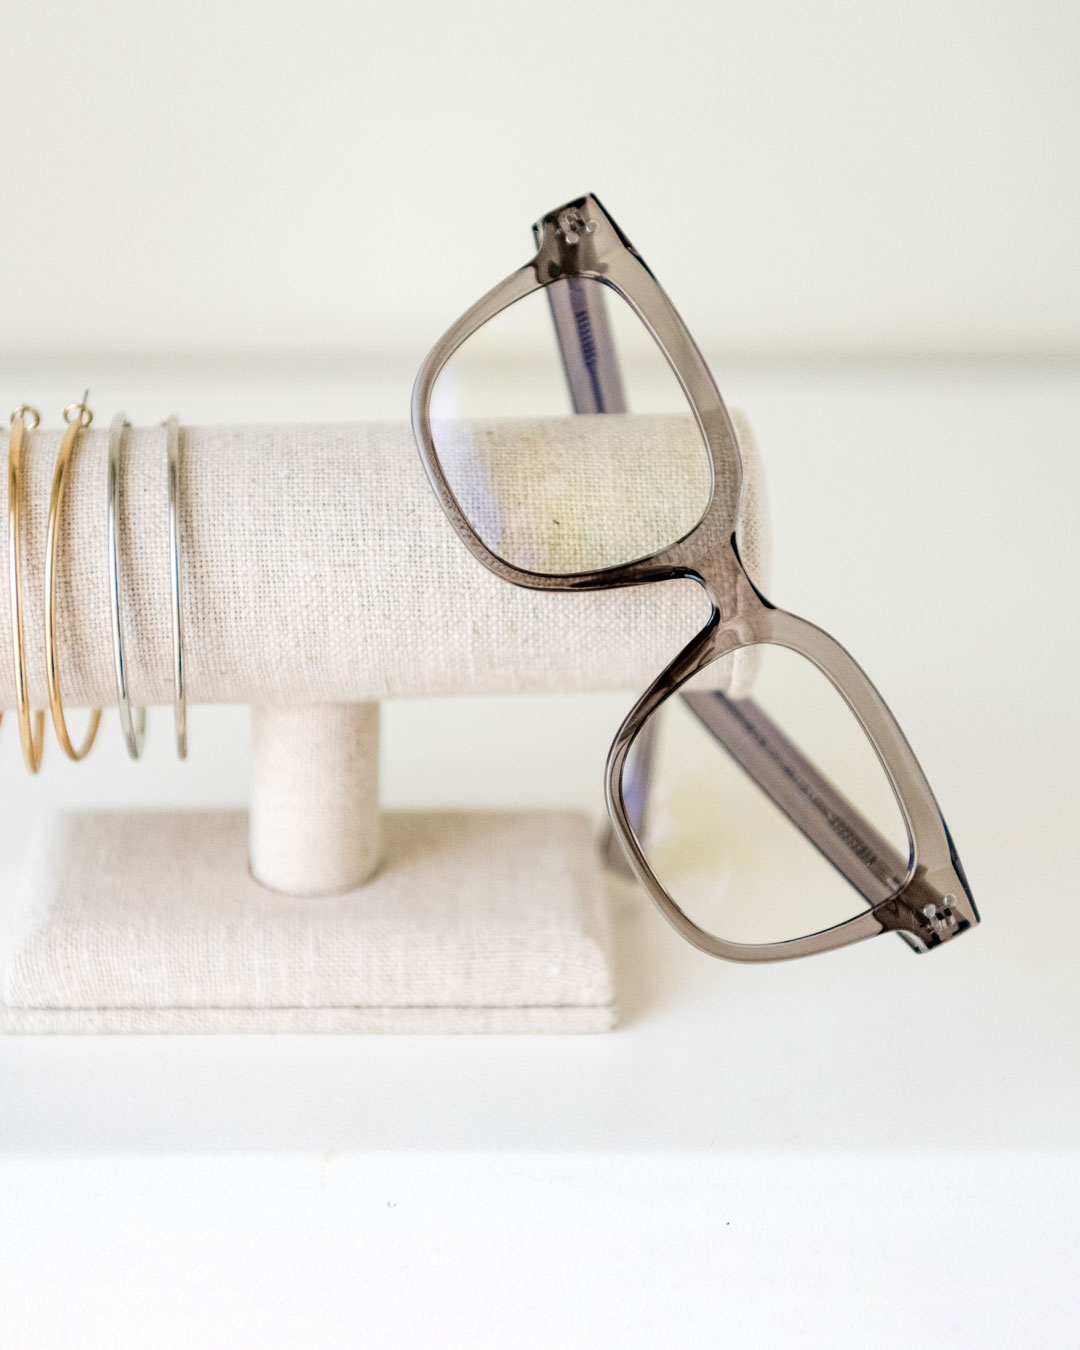 Grey square-shaped glasses with anti-blue light lenses hang from a jewellery stand.